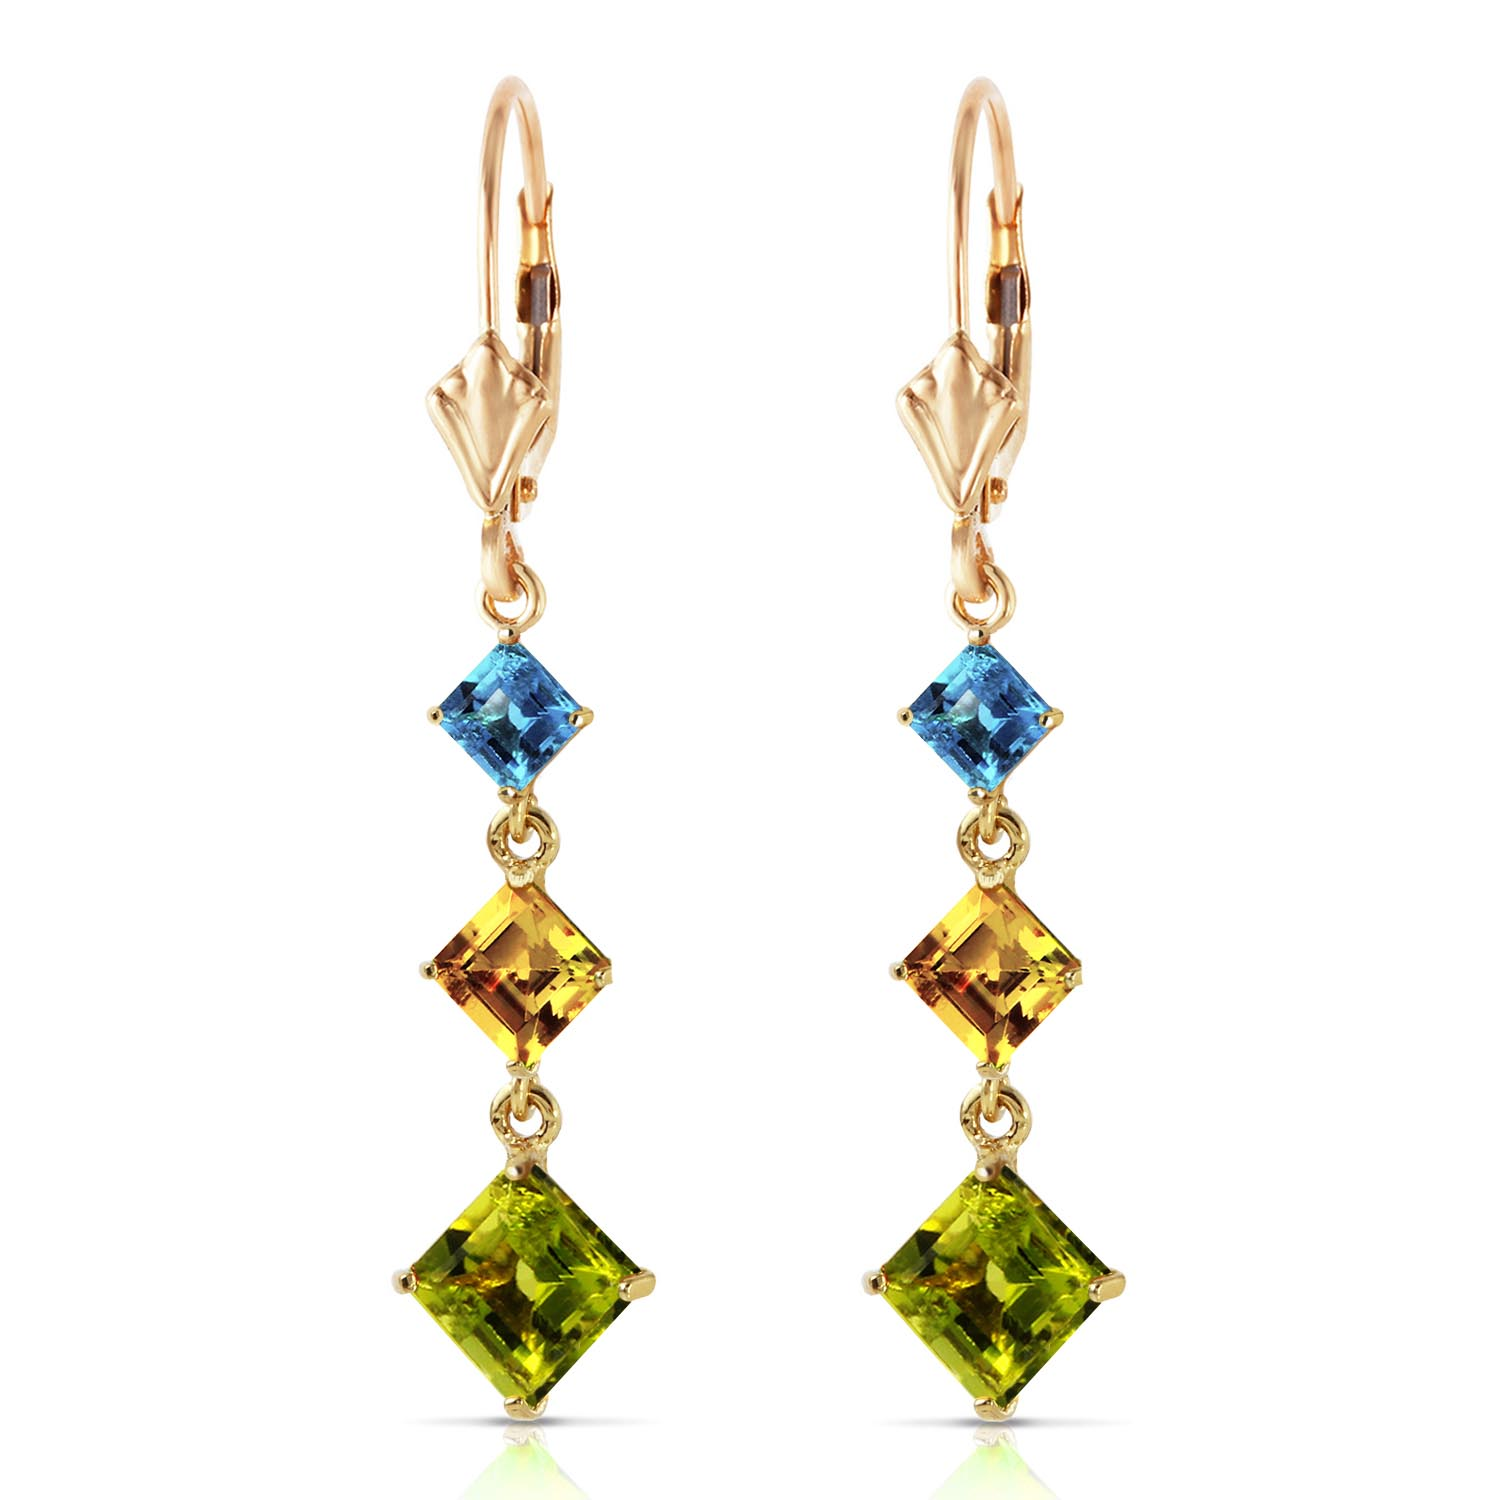 Peridot, Blue Topaz and Citrine Three Stone Drop Earrings 4.8ctw in 14K Gold